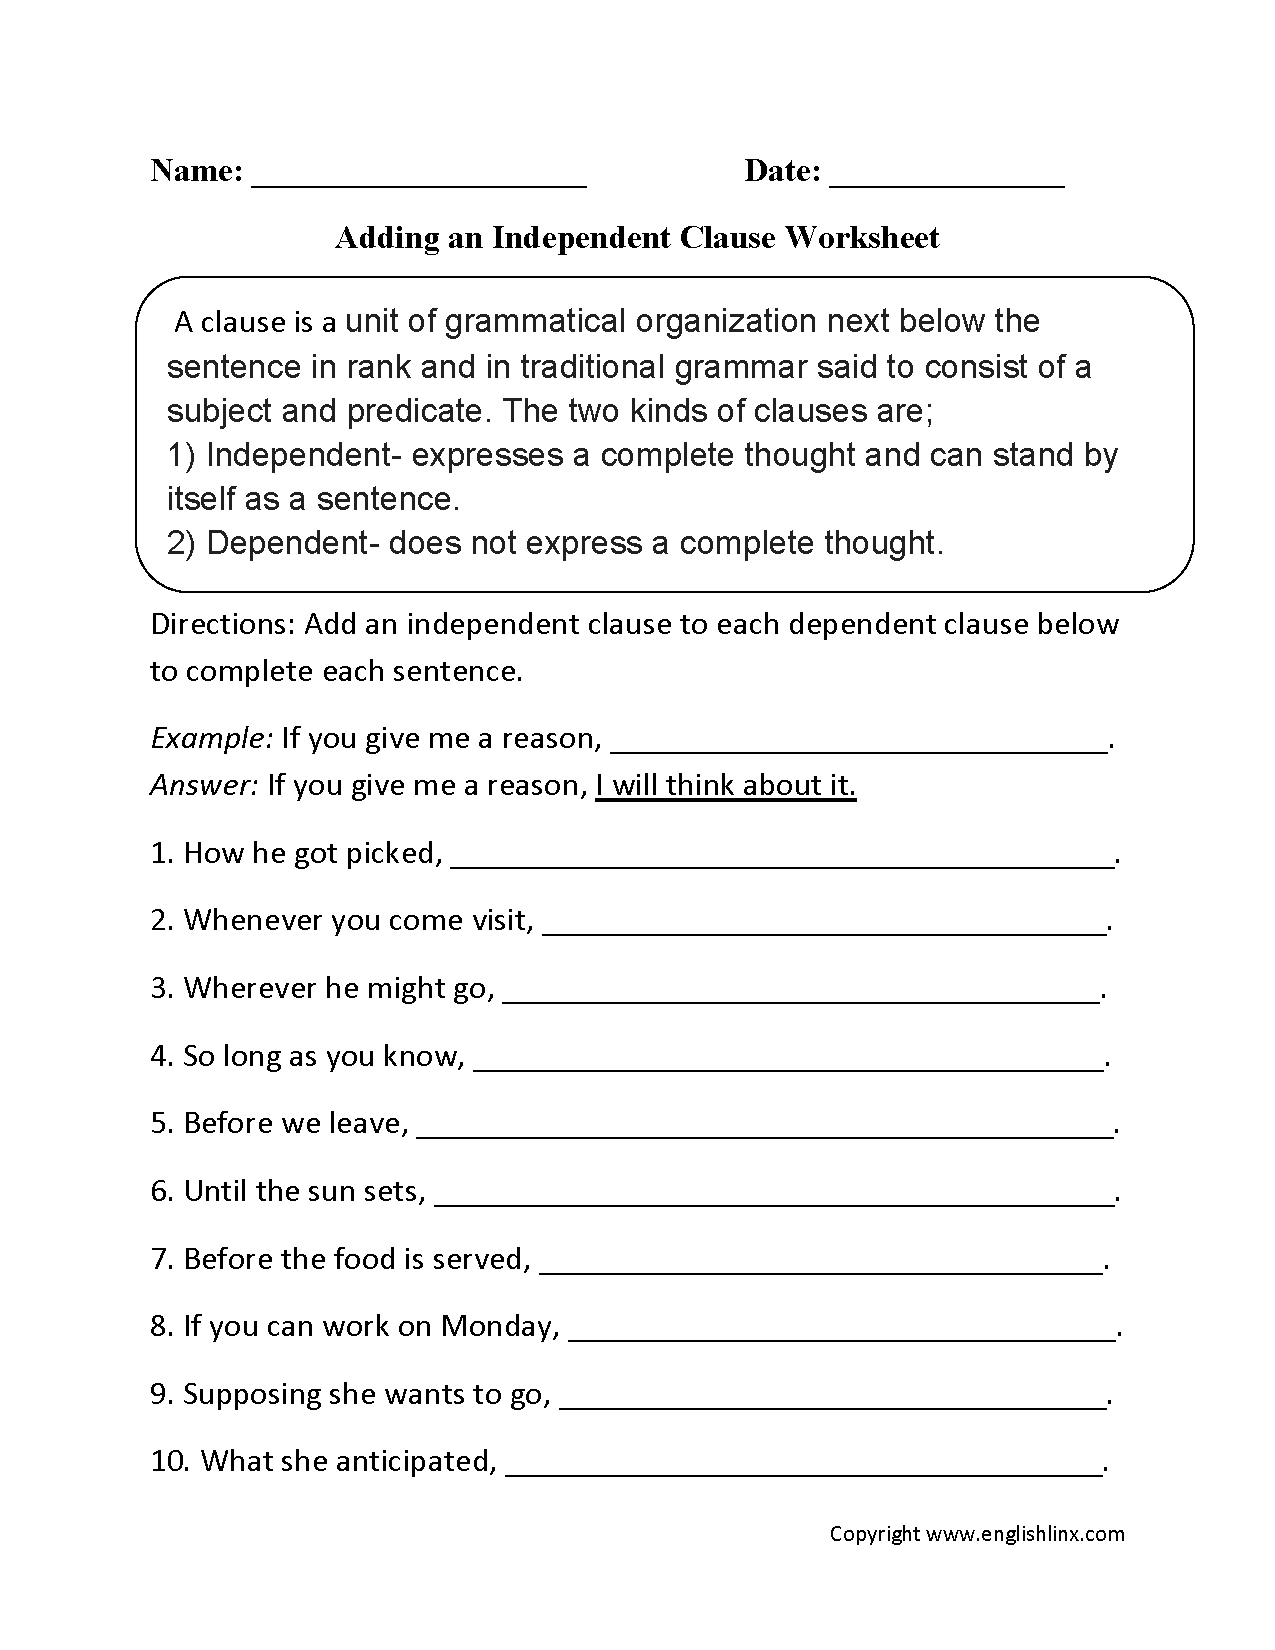 Clauses Worksheets | Adding an Independent Clause Worksheet